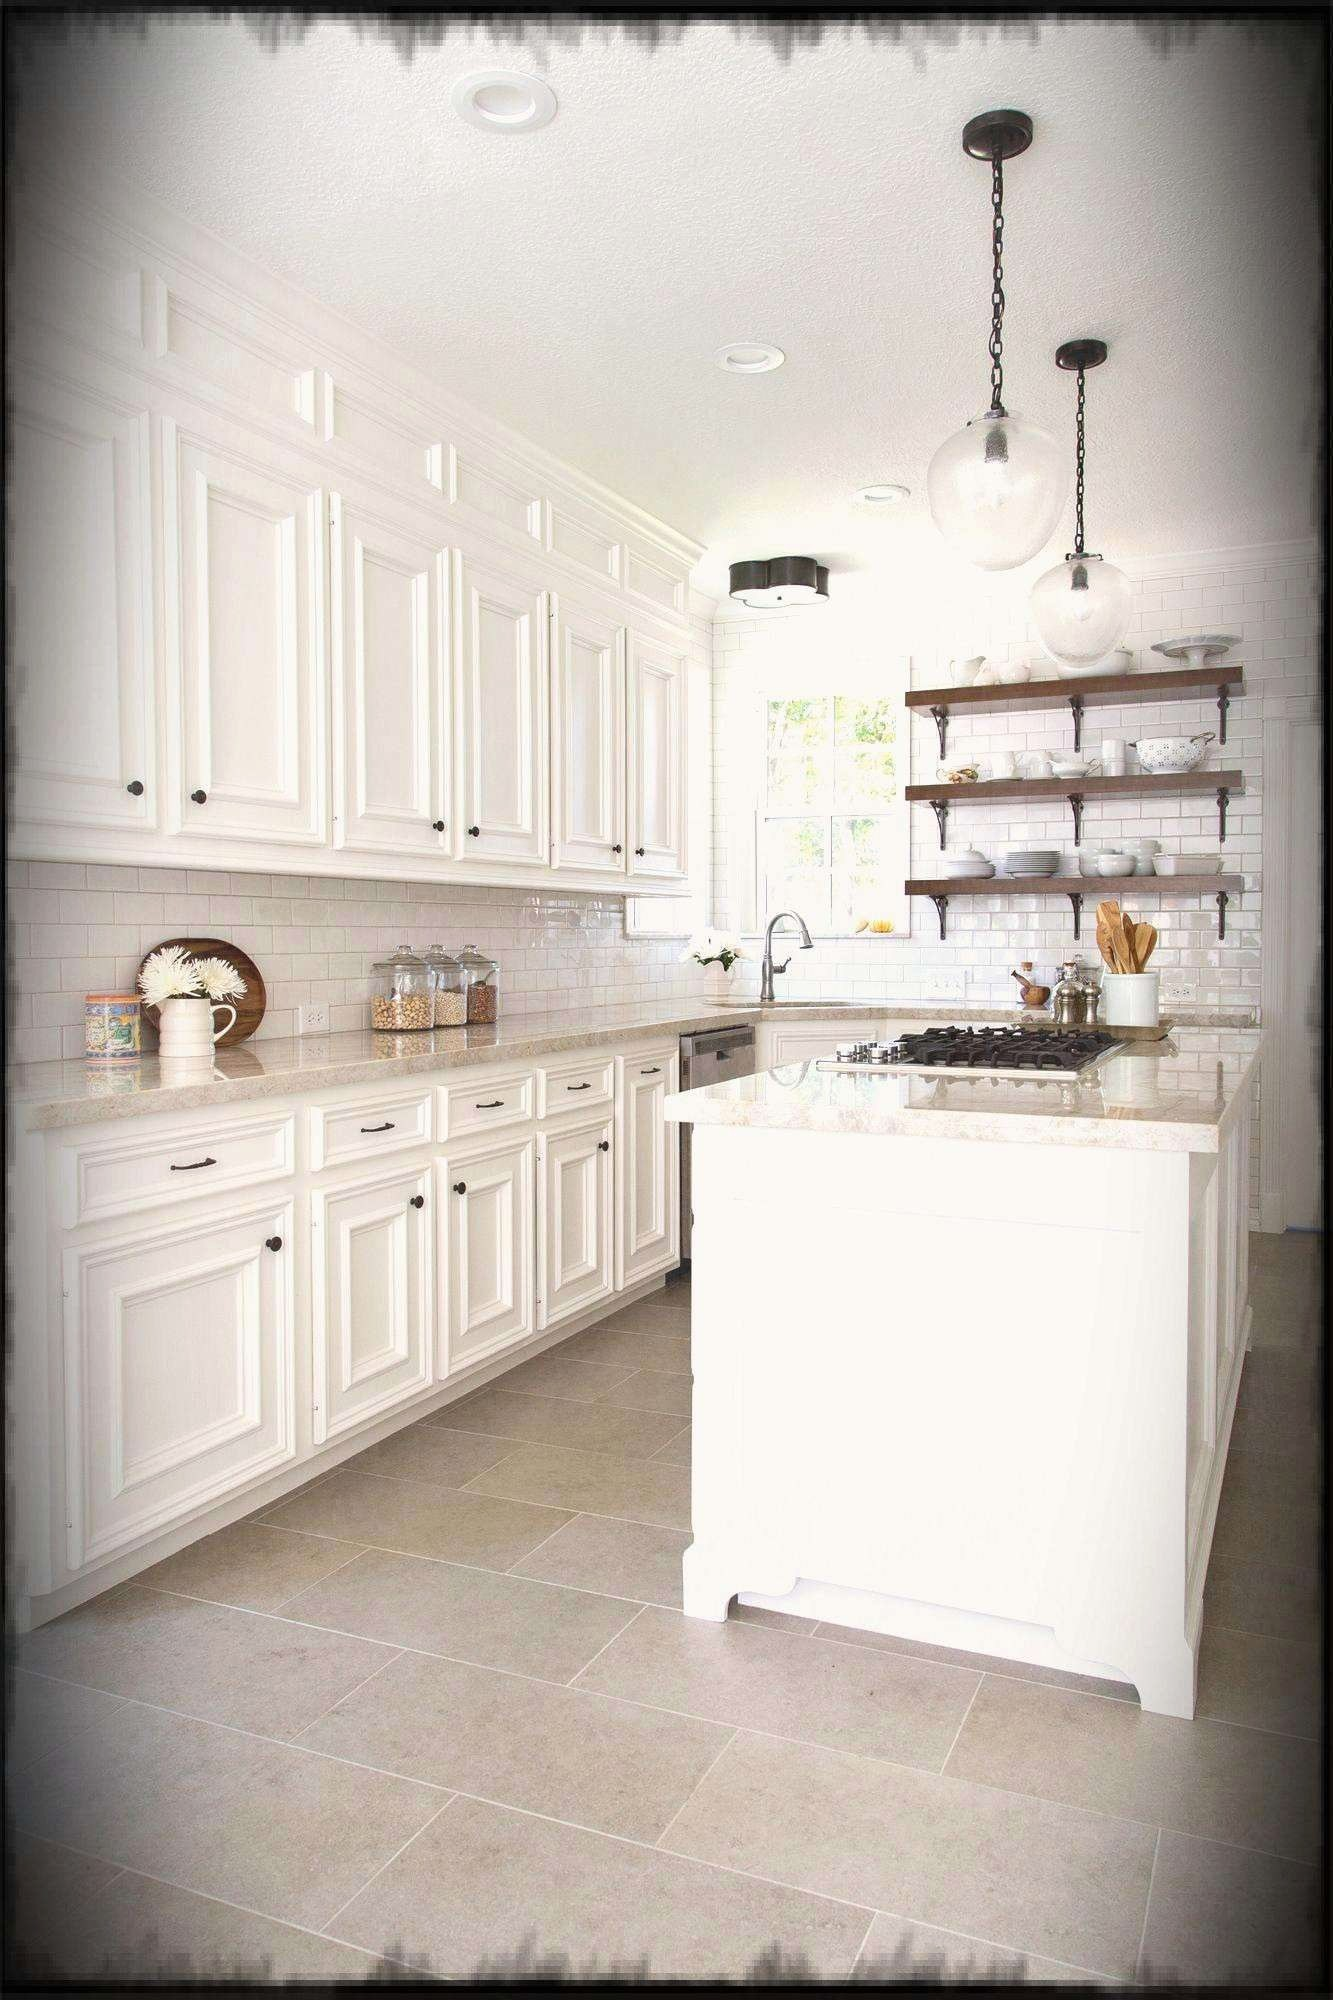 Engaging Bathroom and Kitchen Remodeling with Fresh Bathroom from kitchen remodel software image source deercreekvineyard